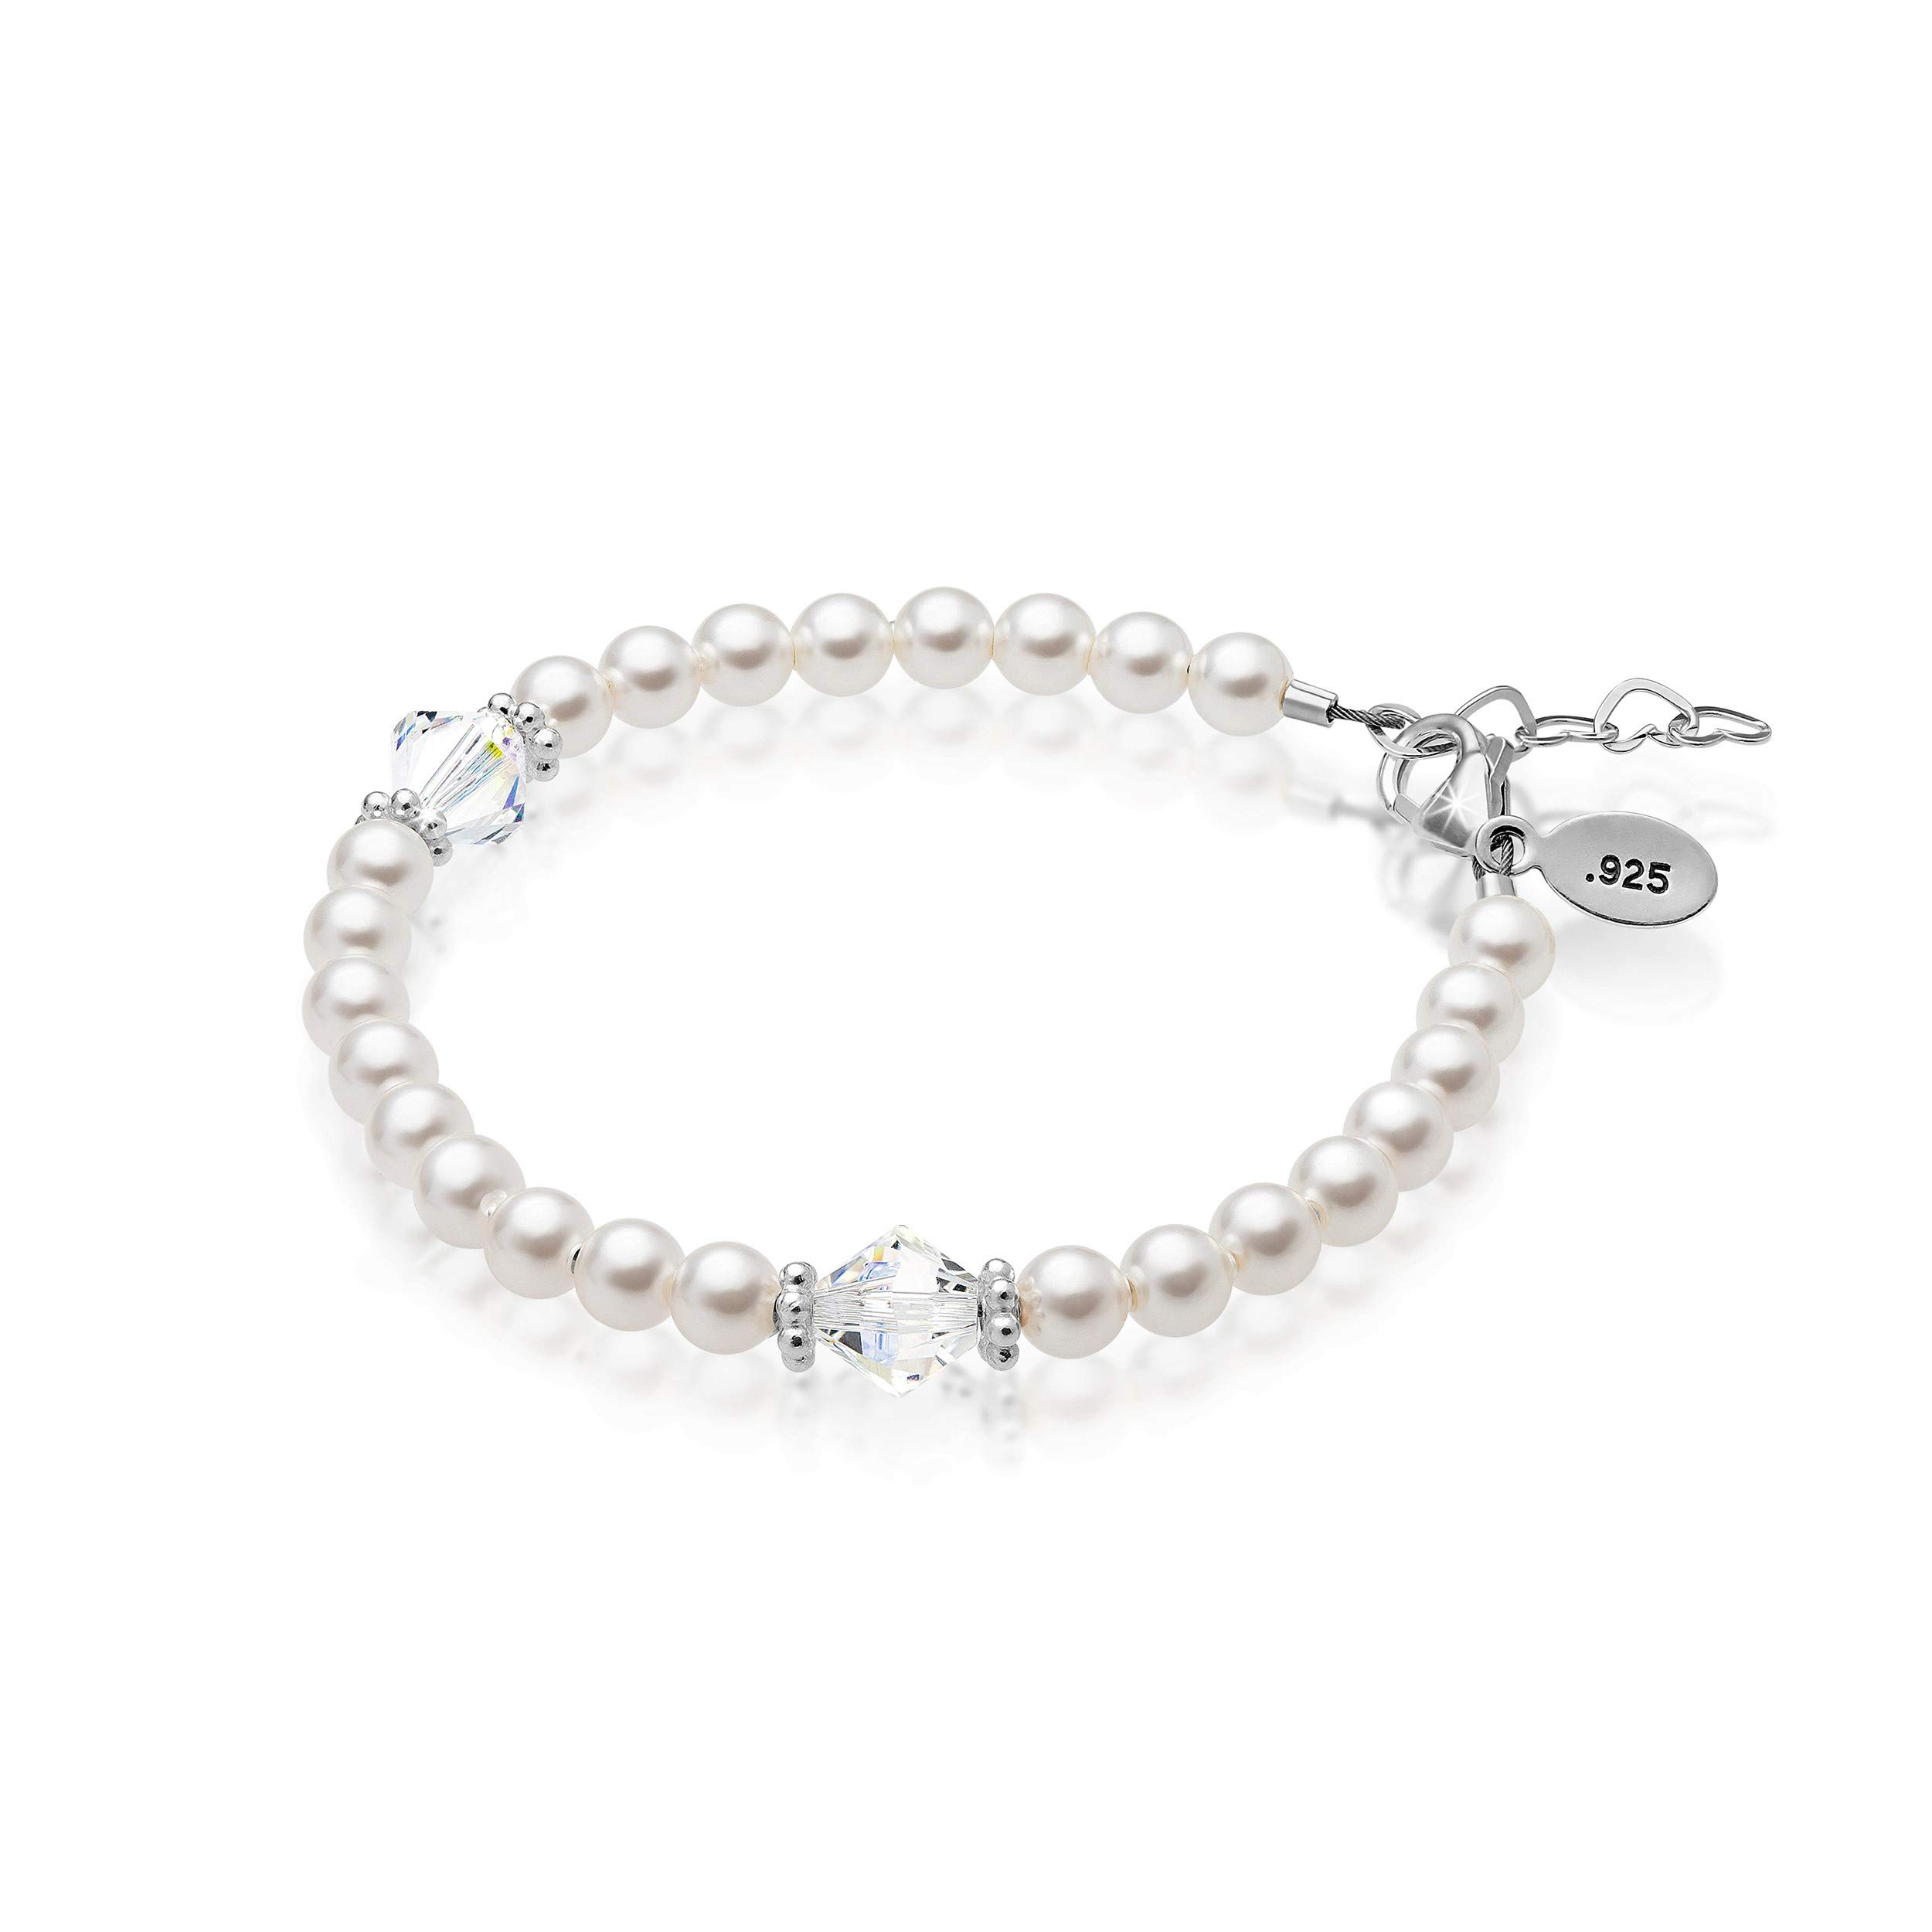 Baby Crystals Baby Jewelry for Infant Girls- Charm Bracelets for Girls-Baby keepsake Gifts -Adjustable Bracelets embellished with Pearls and Crystals from Swarovski (0-3 Months)